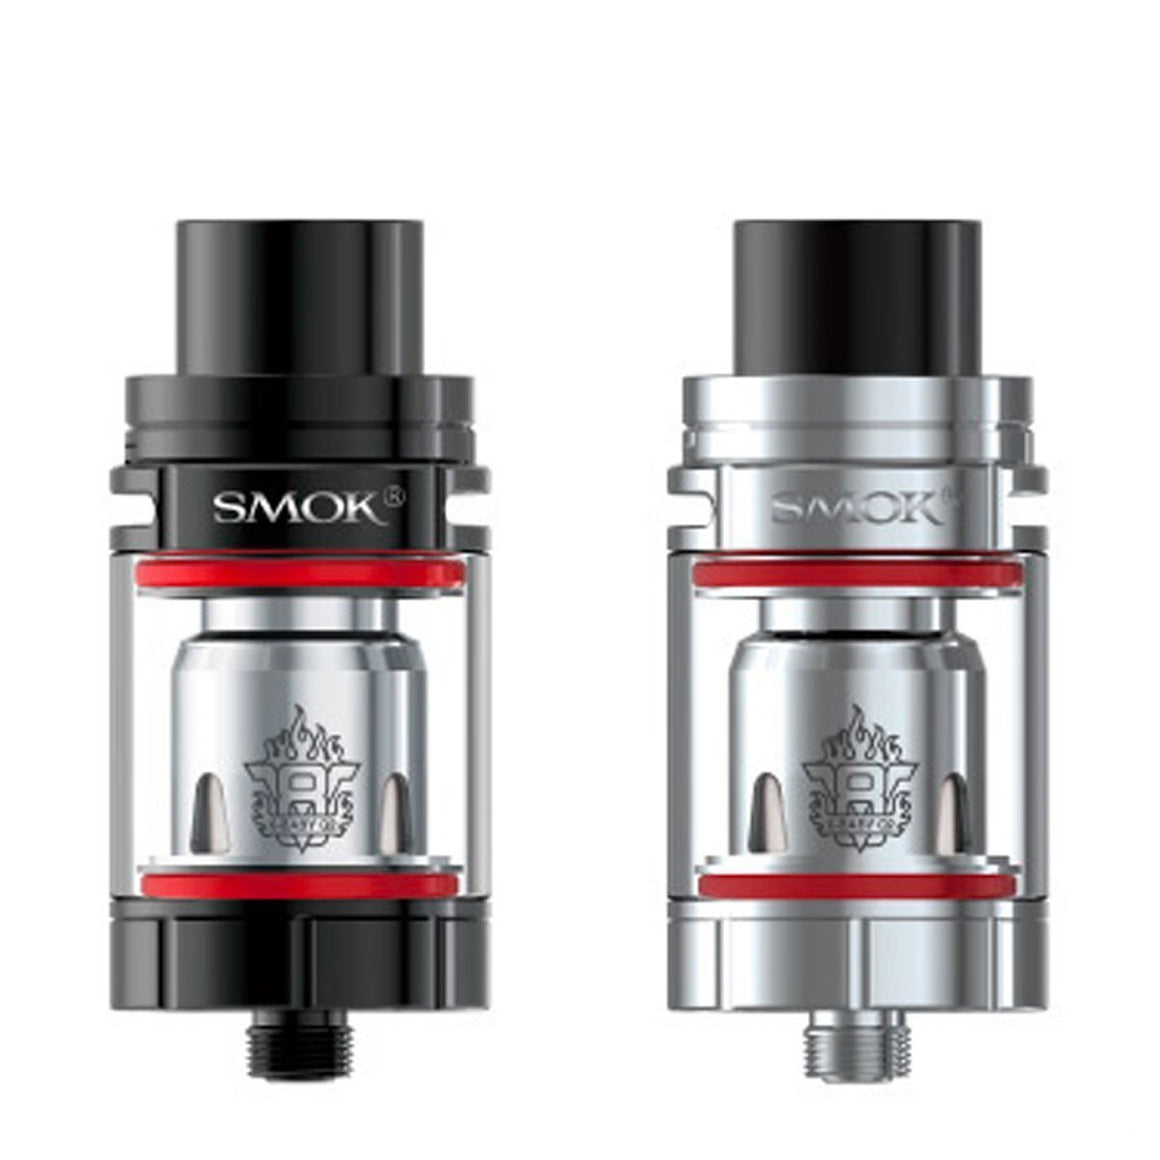 Smok Accessories Smok TFV8 X-Baby Beast Brother Sub-Ohm Tank